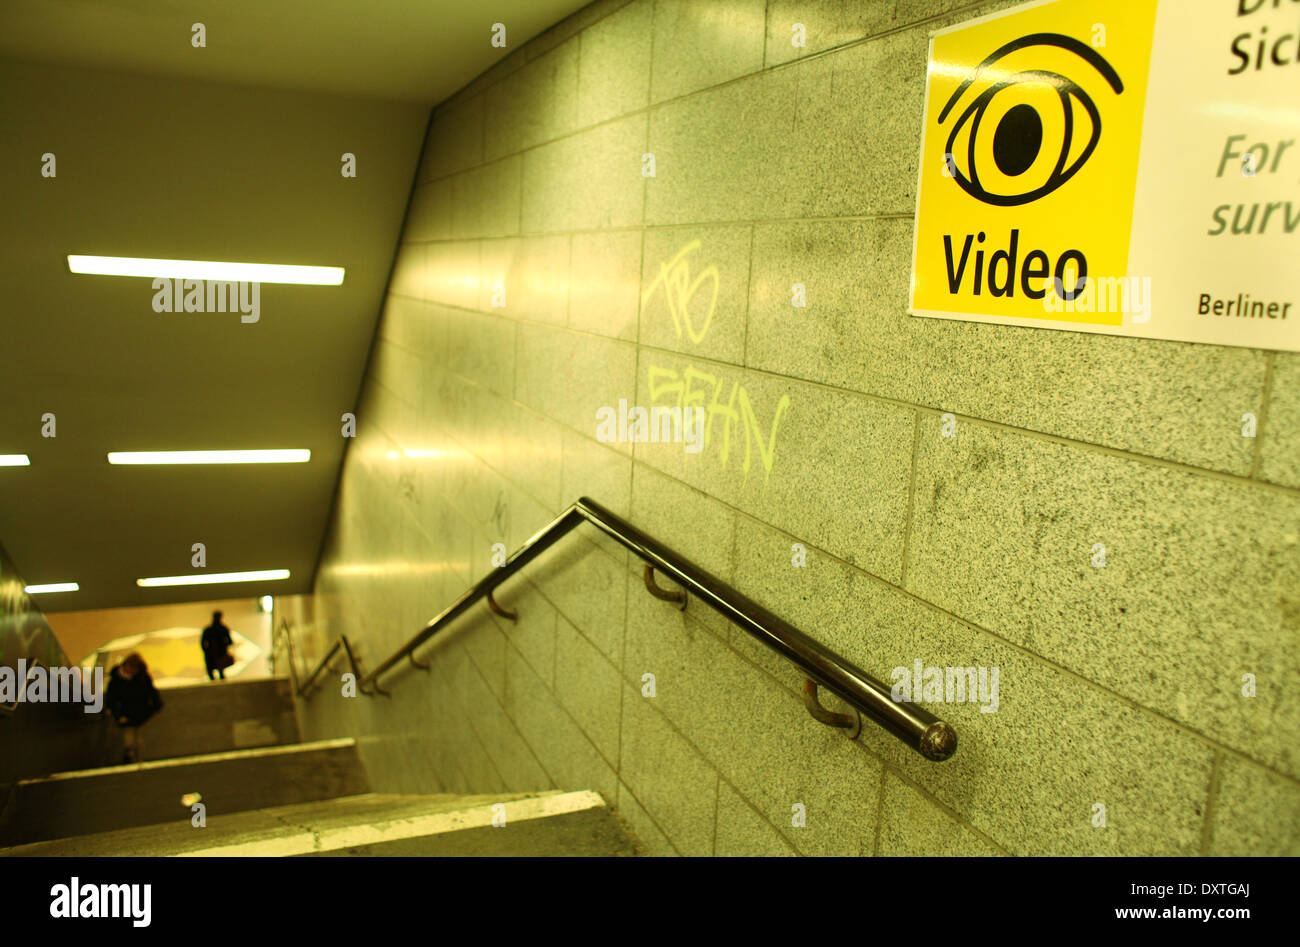 A metro entrance with a video control sign in Berlin, pictured January 14, 2014. Foto: Wolfram Steinberg dpa Stock Photo